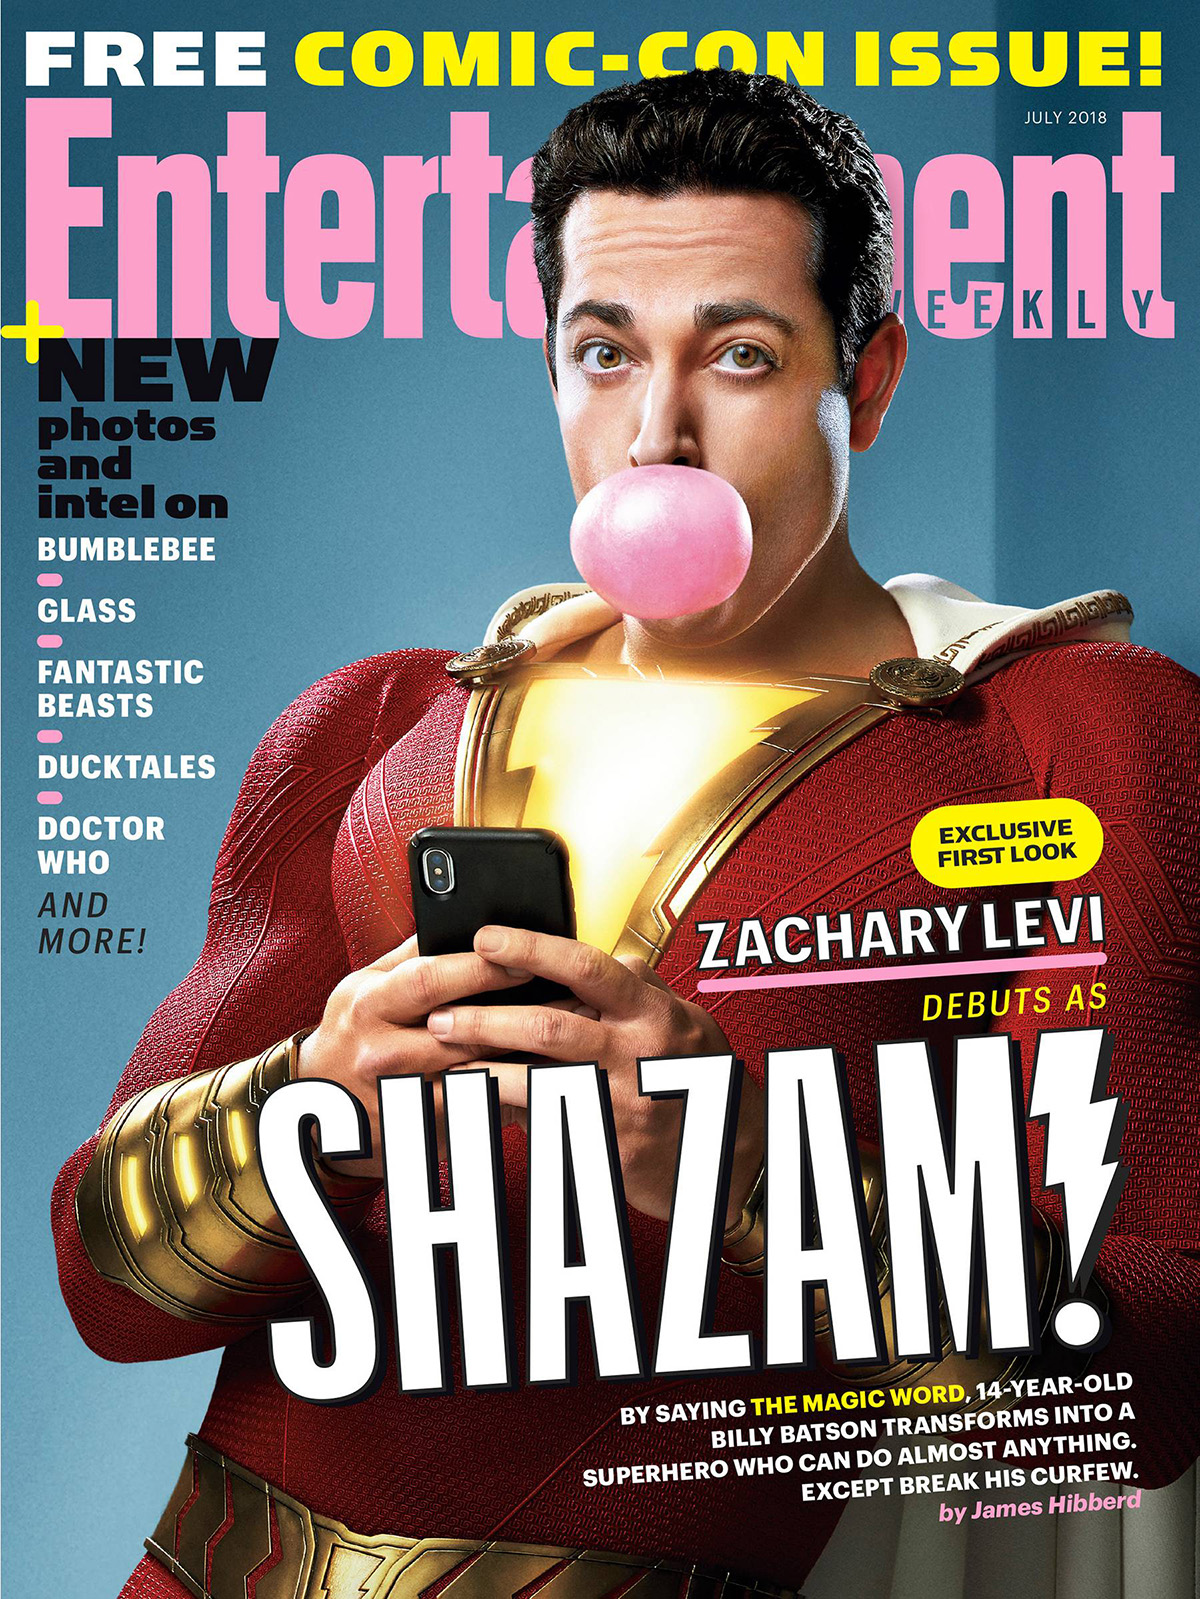 Portada de la revista Entertainment Weekly dedicada a Shazam!